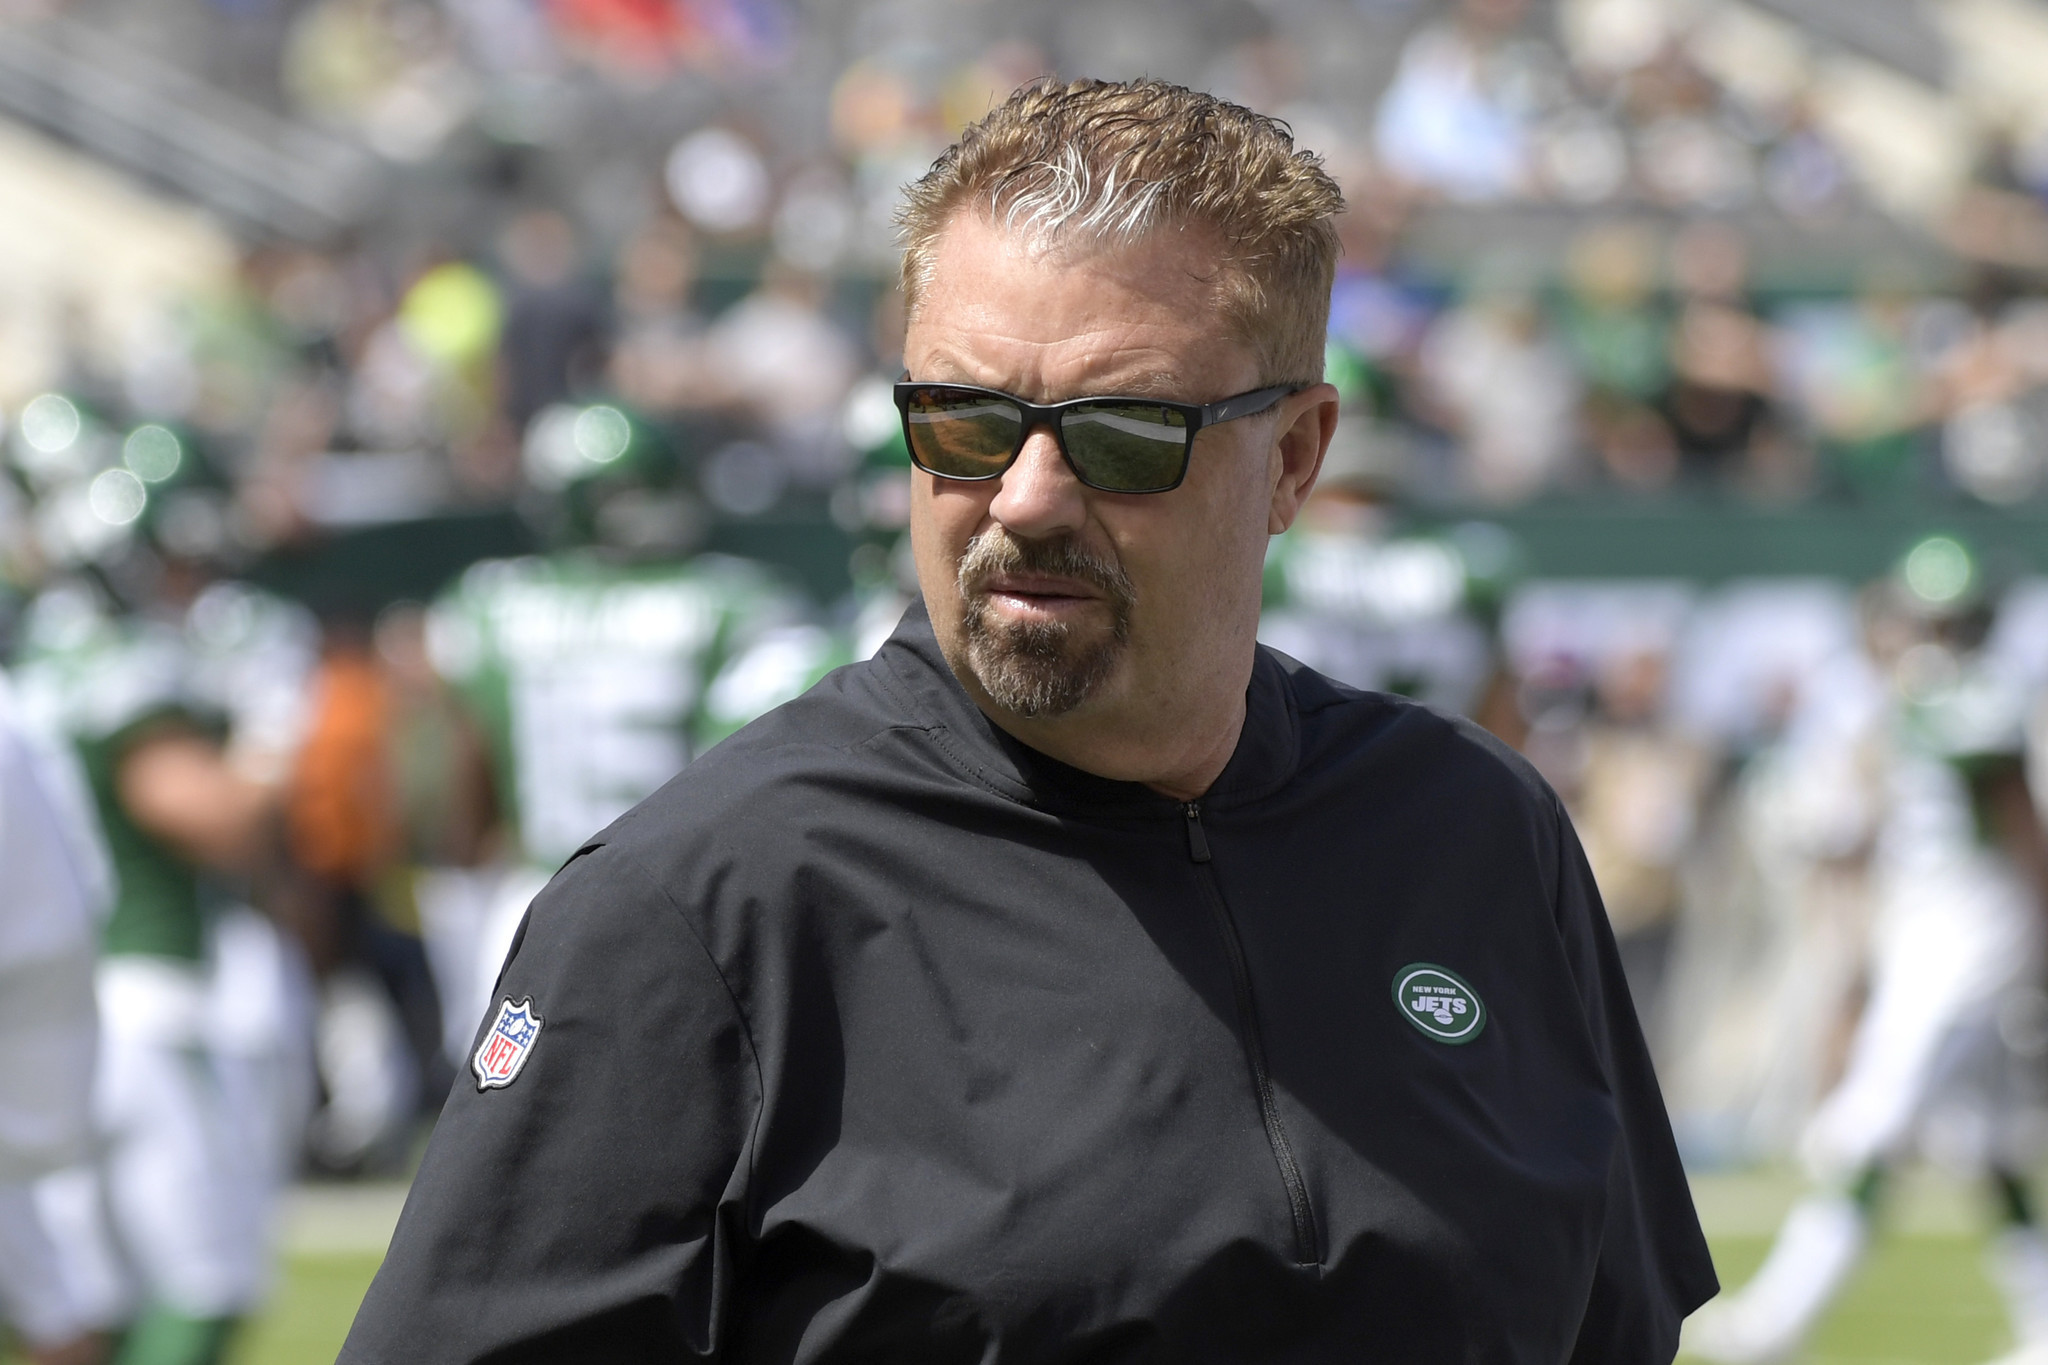 Jets free agent signings see Gregg Williams as the biggest draw